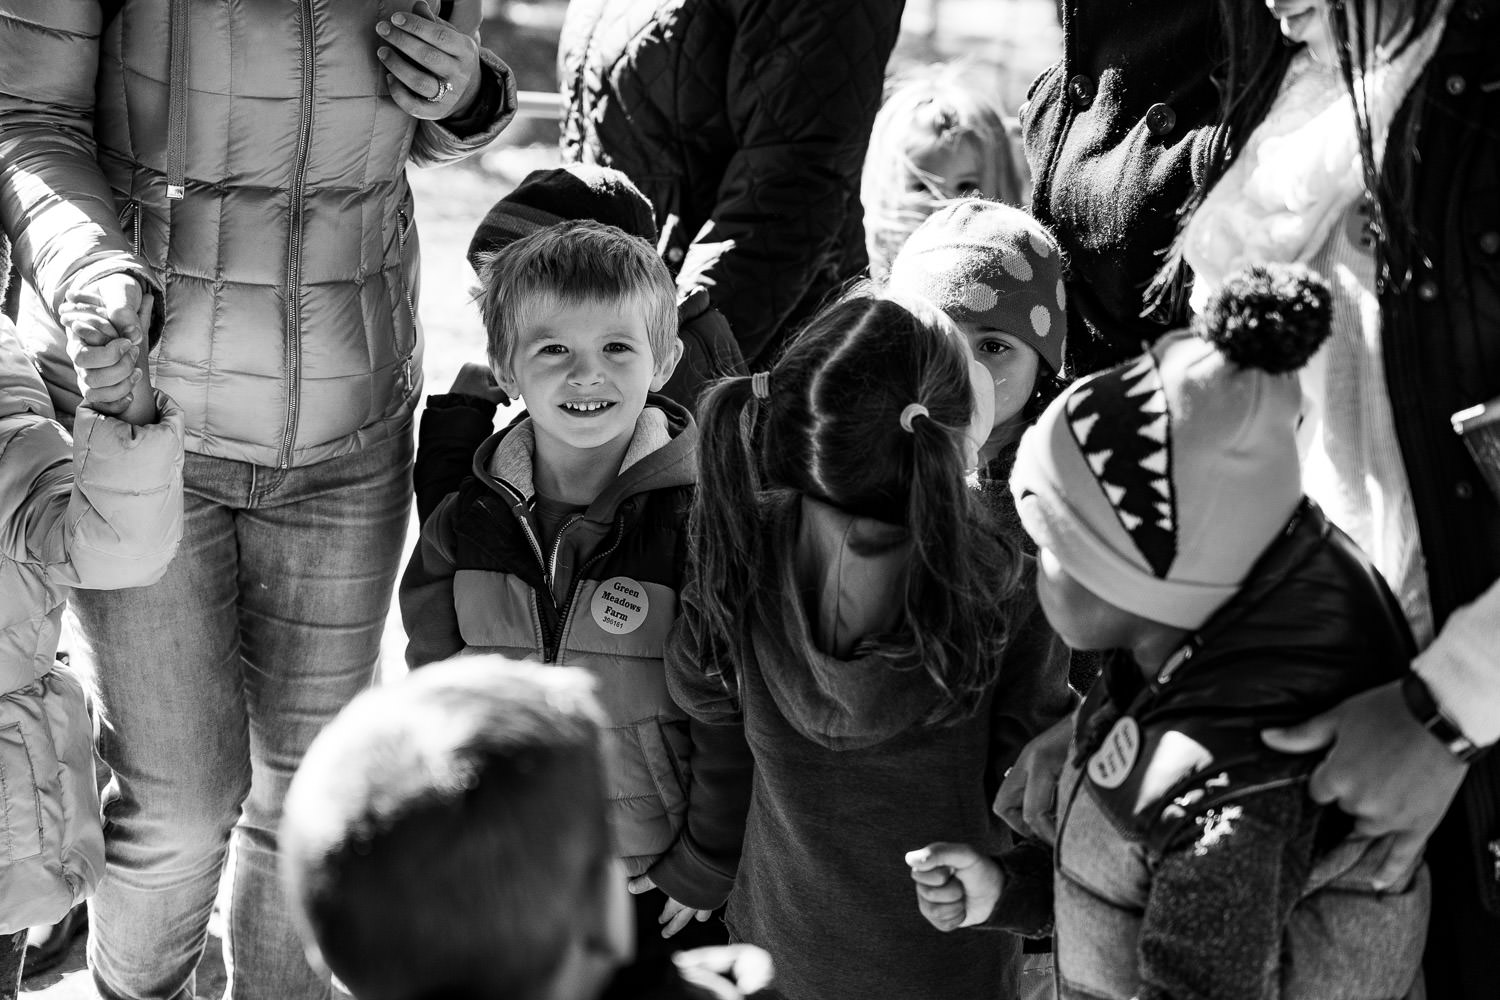 A little boy smiles in a group of his classmates.